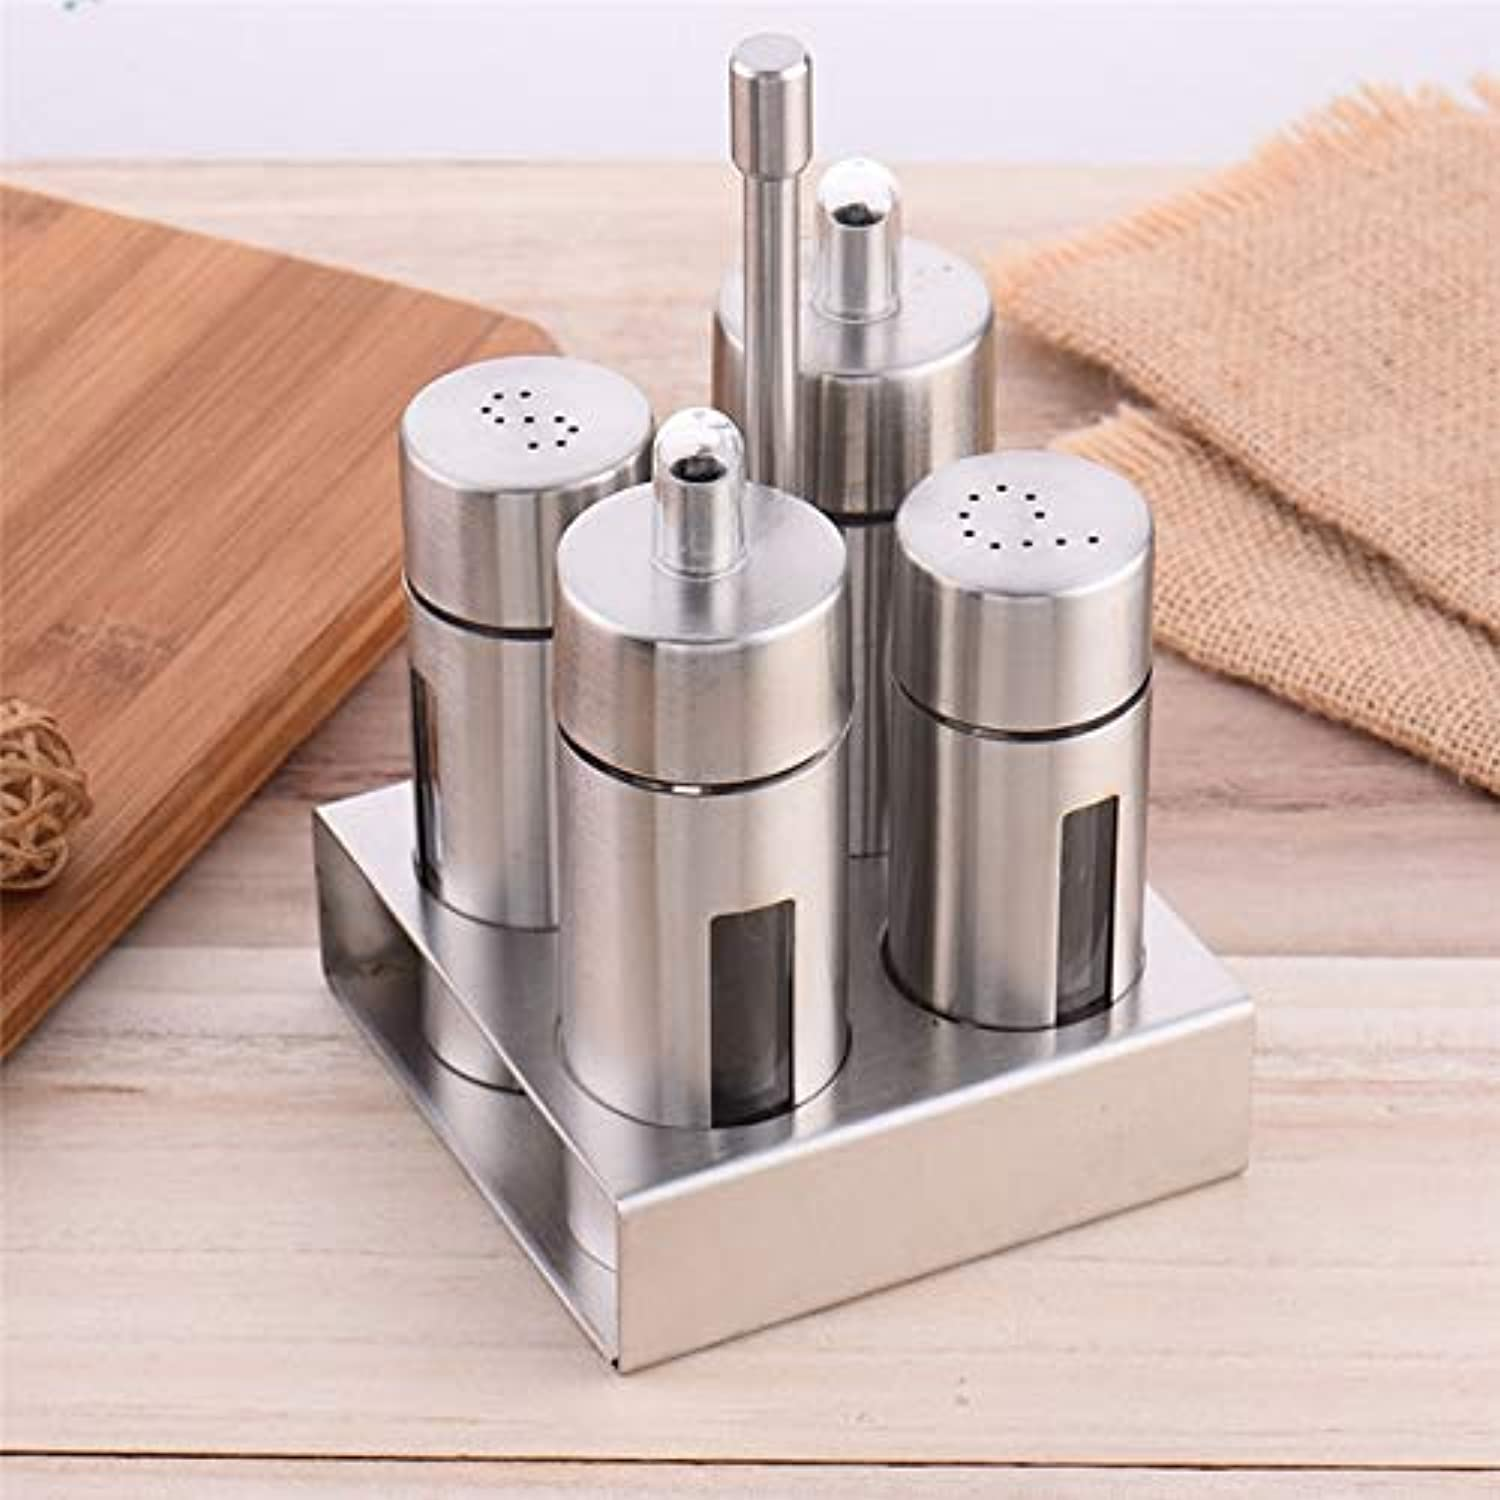 Farmerly 1 Set Spice Pepper Shakers Sugar Salt Condiment Tins Oil Bottle Stainless Steel Seasoning Storage Kitchen Cooking Barbecue Tools   B